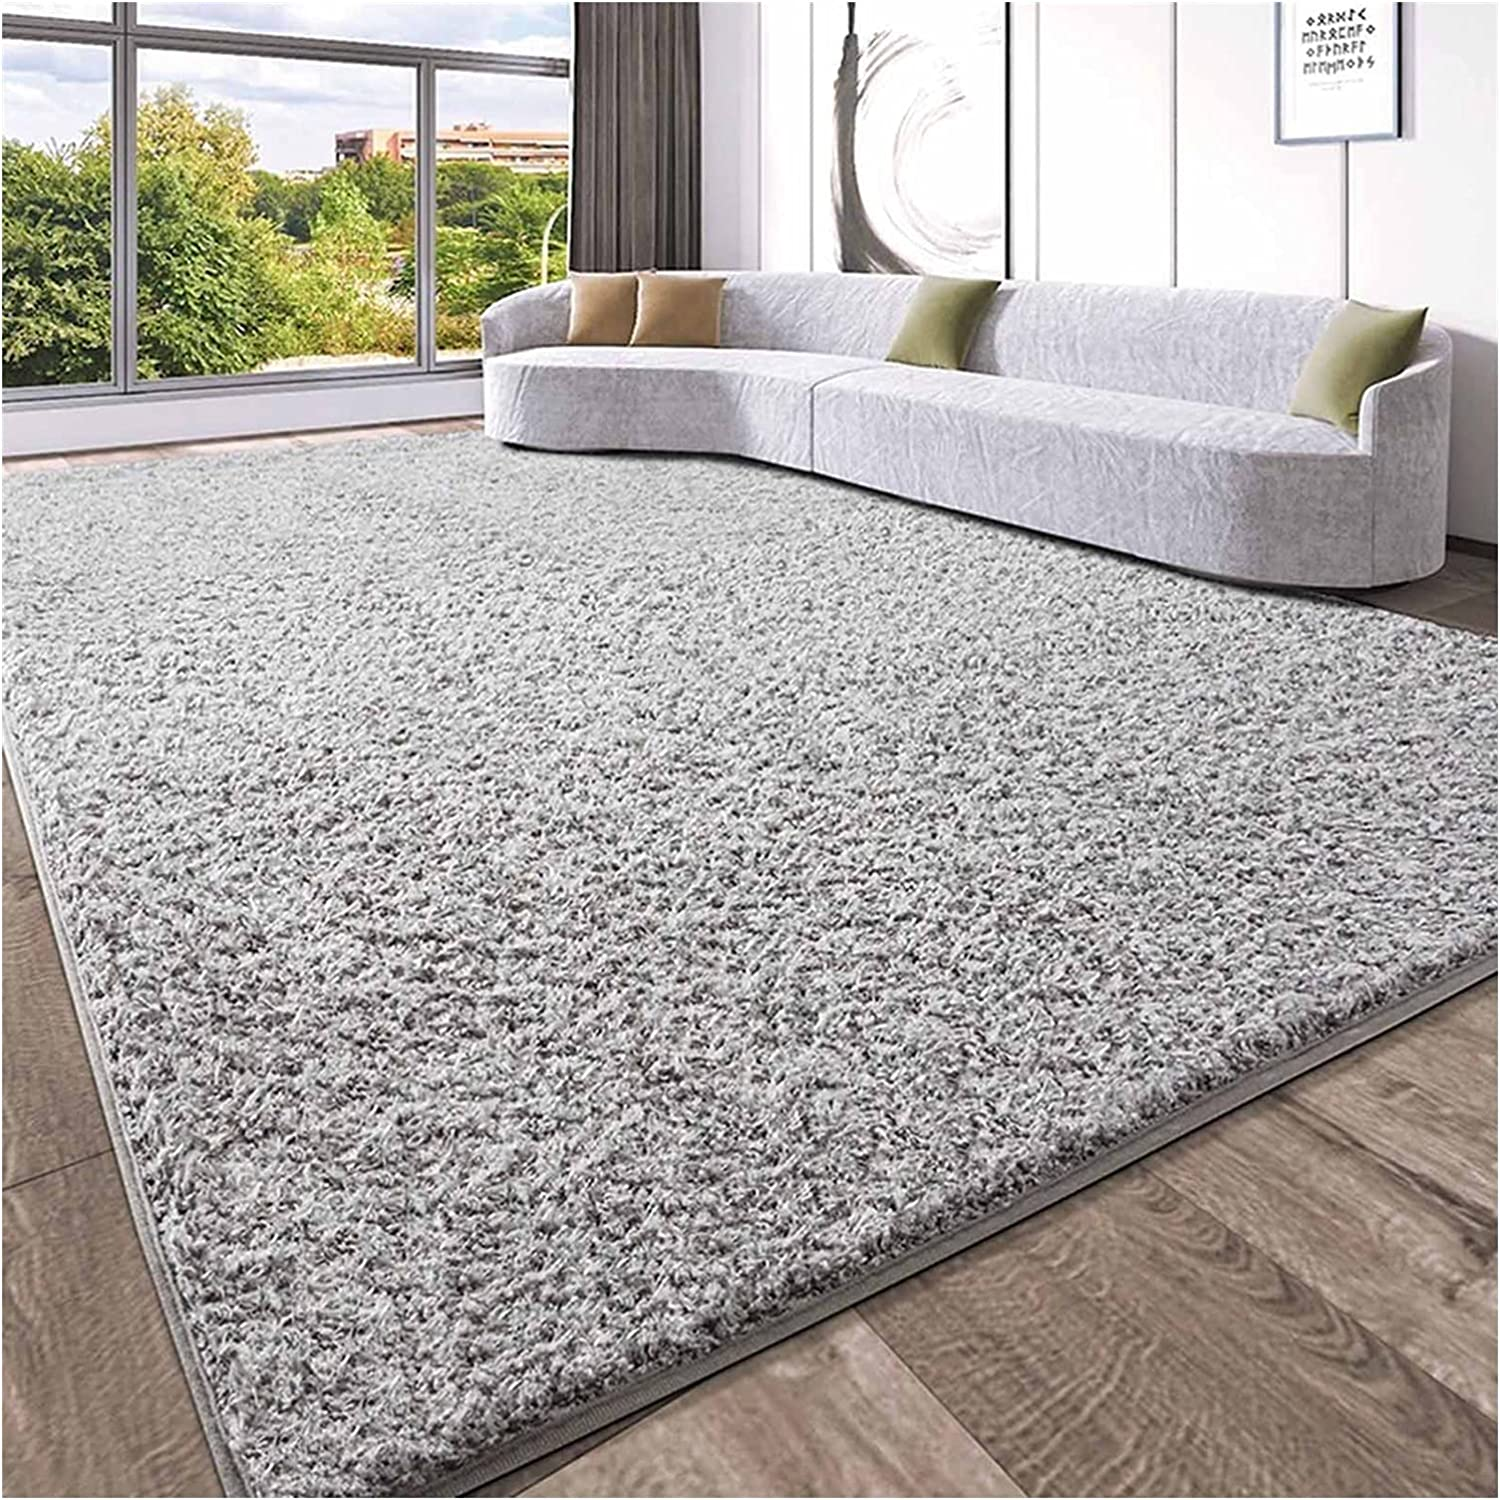 Wdejlgmhcor Regional Carpet Modern Art Soft Unique Style Limited time for free In a popularity shipping